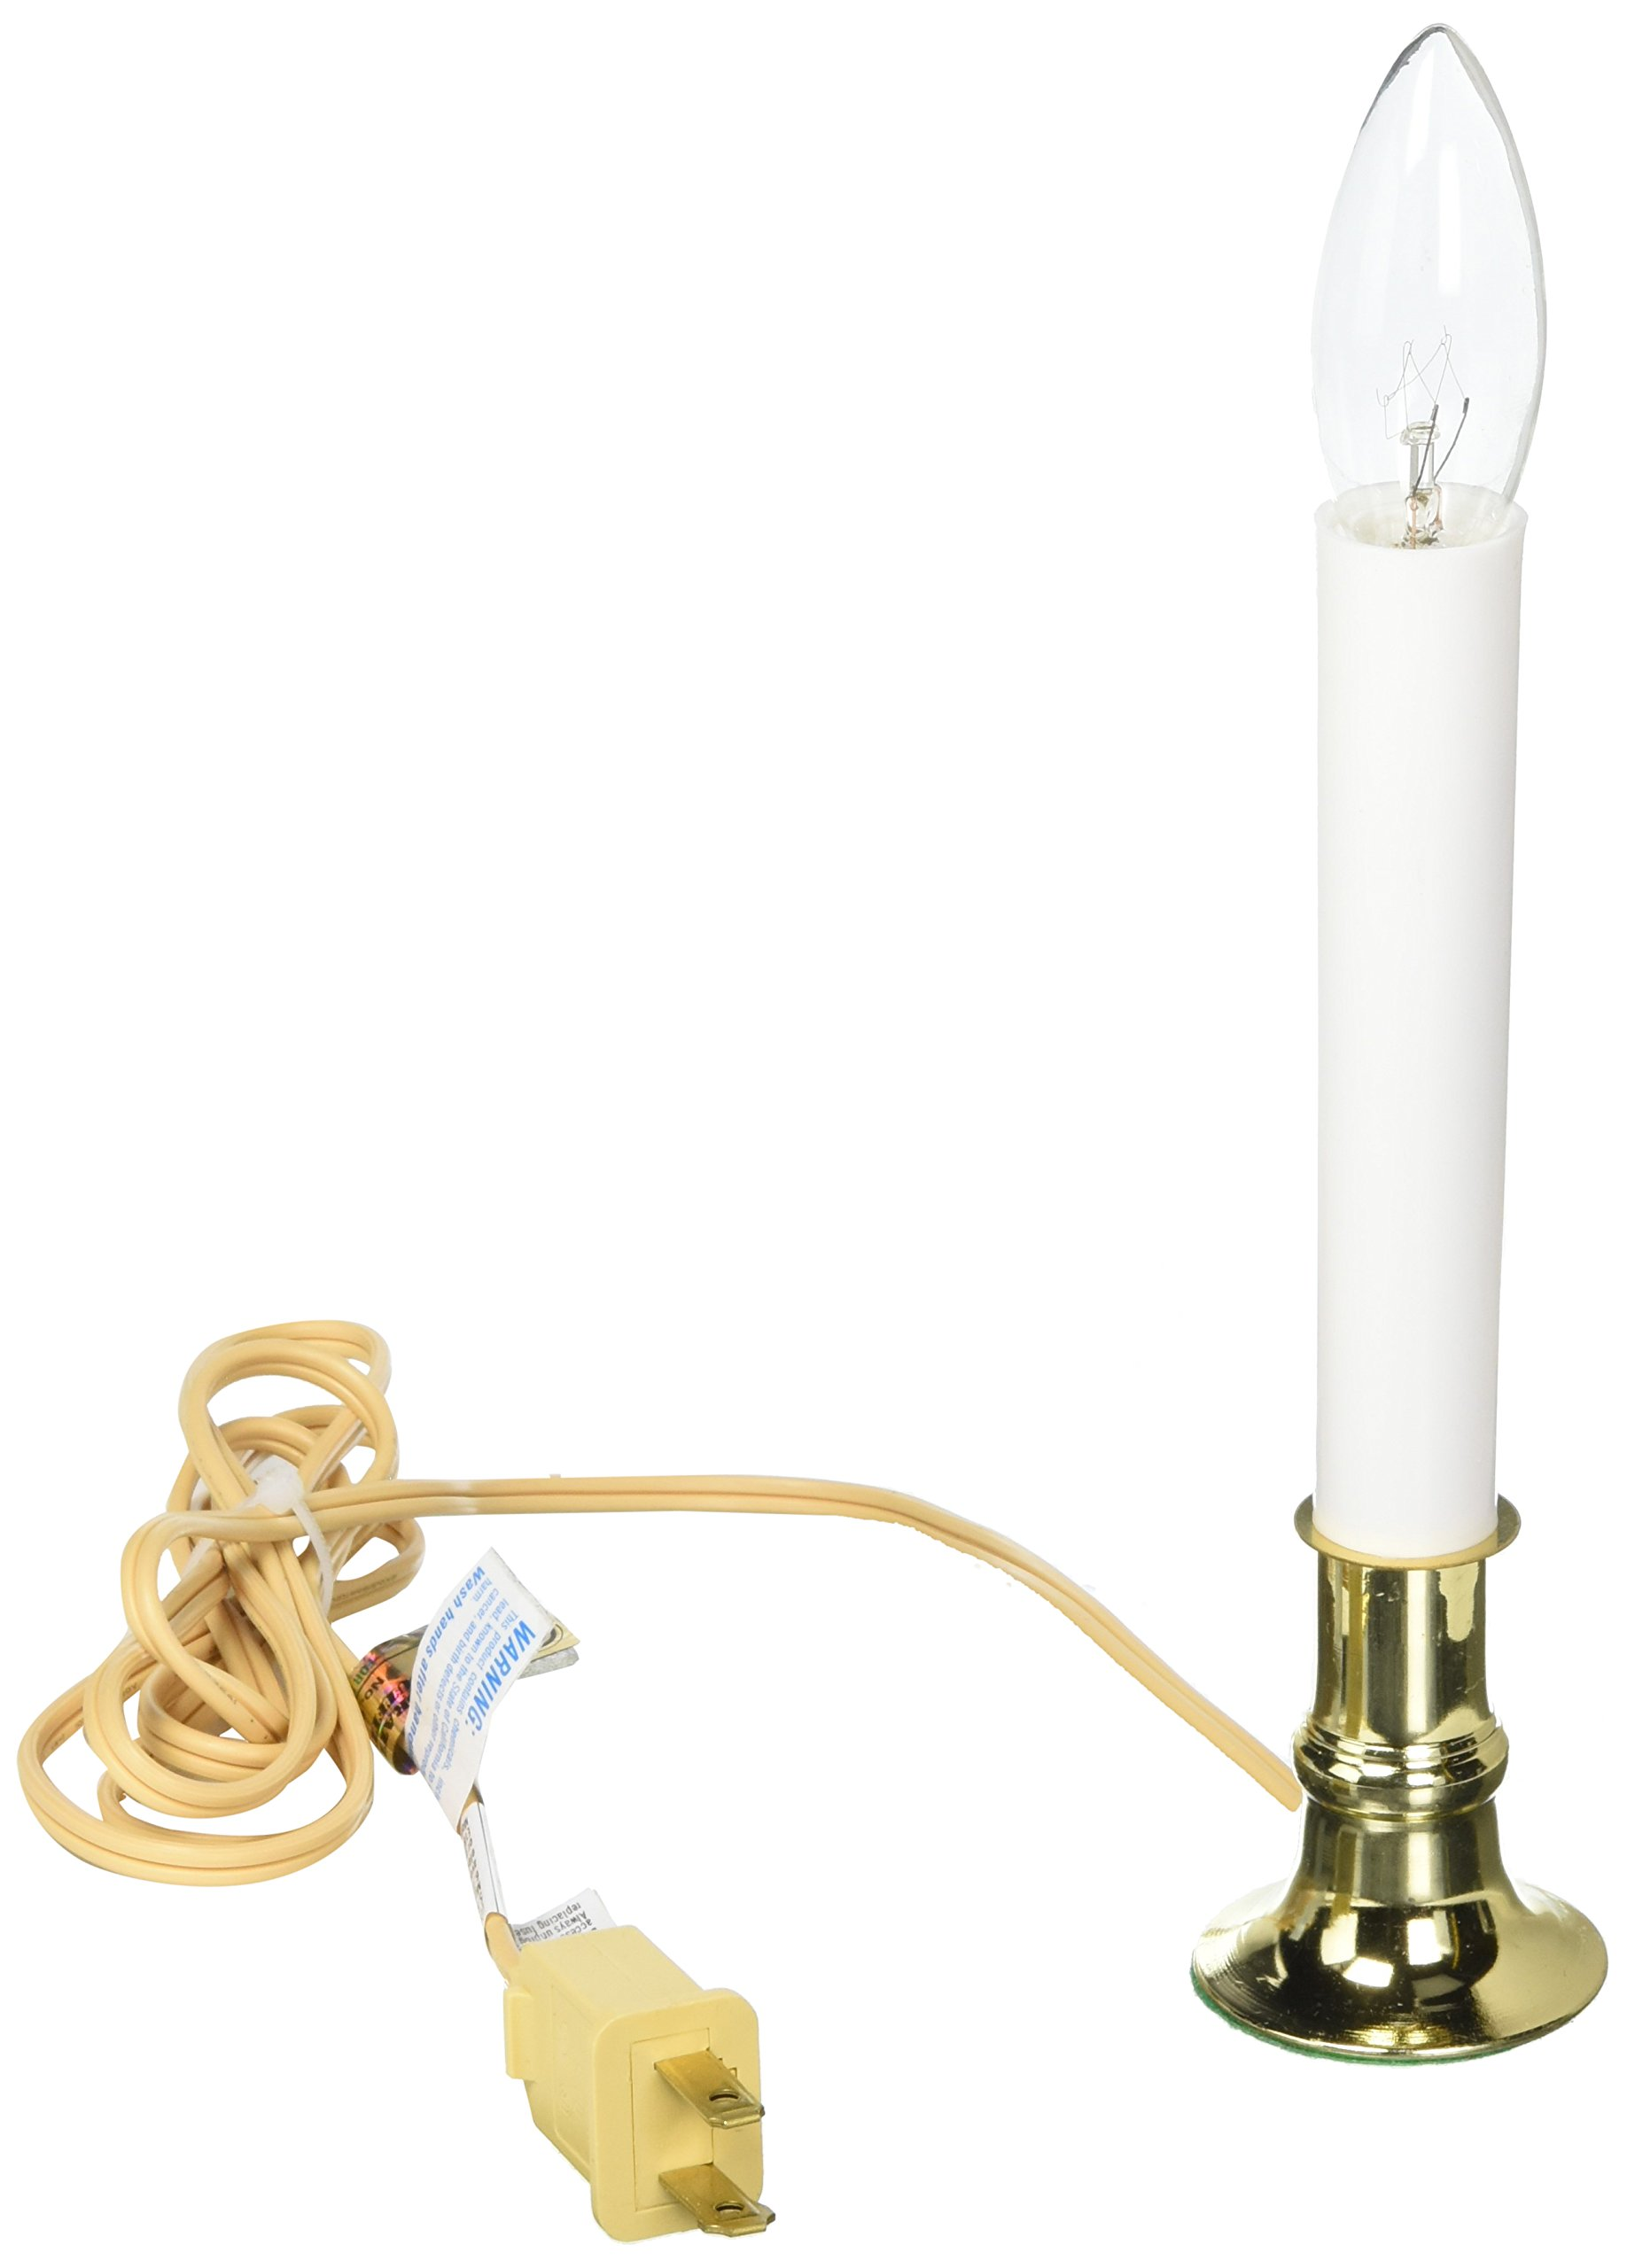 Electric Welcome Candle Lamp With Sensor Boxed-Quantity of 4, 7 Inches Tall